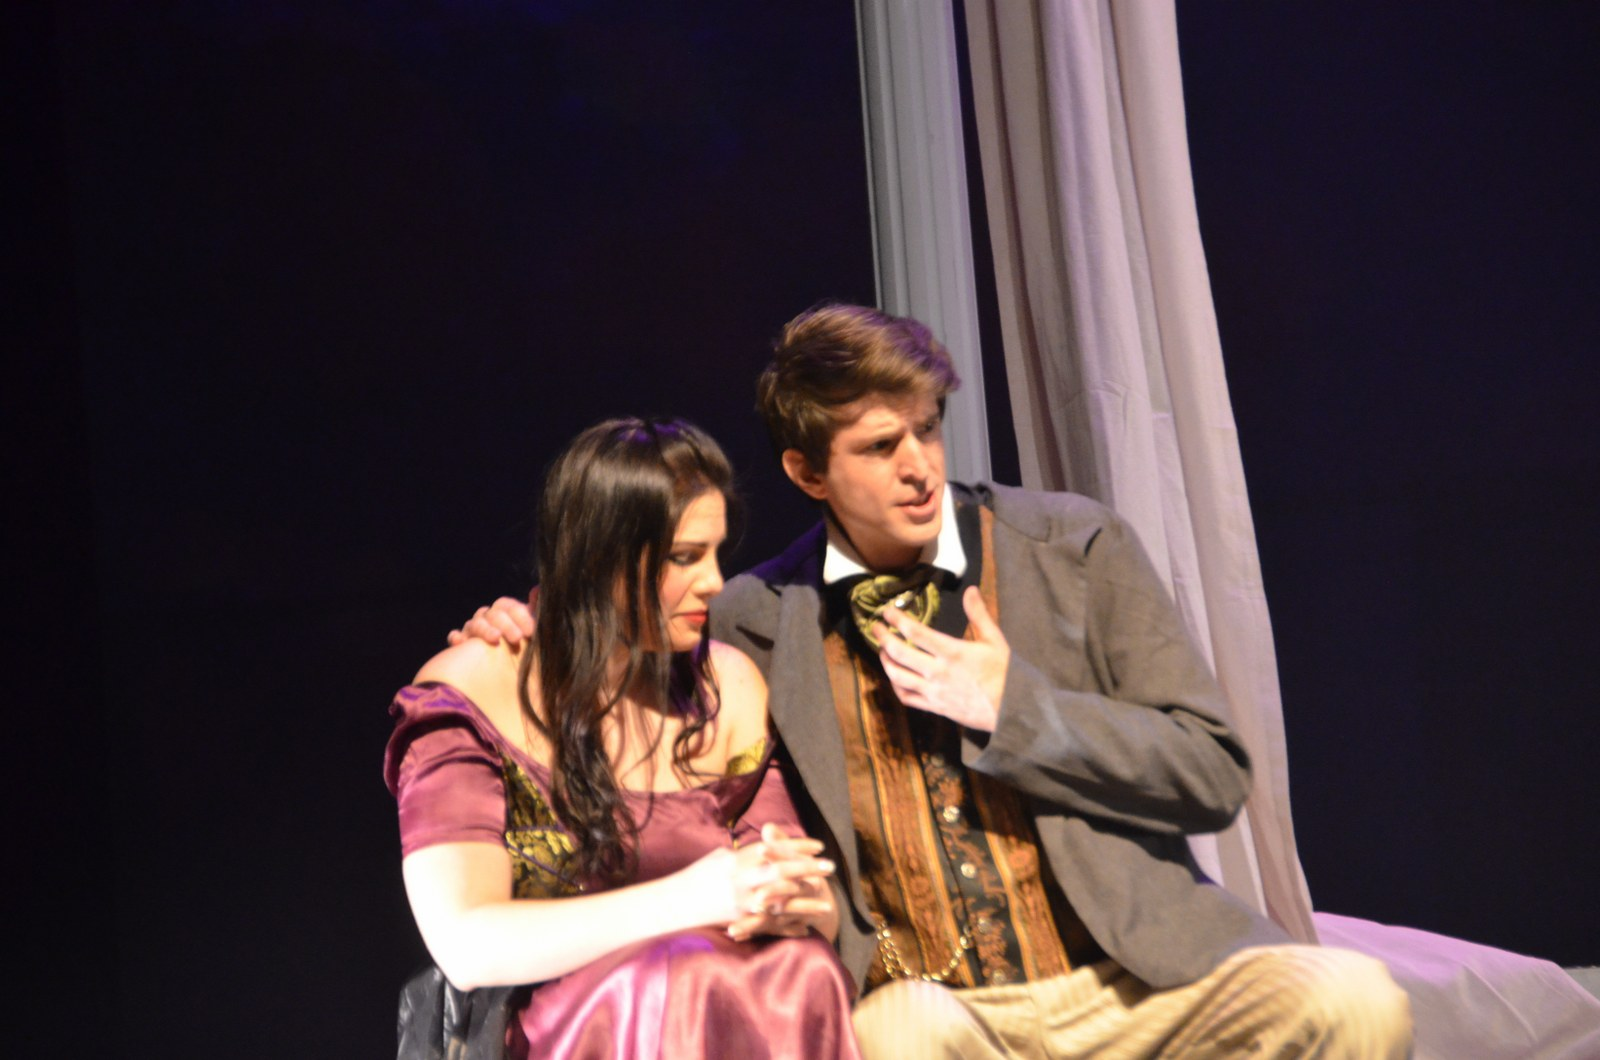 Stephanie DeCiantis as Nedda and Bradley Christensen as Silvio.